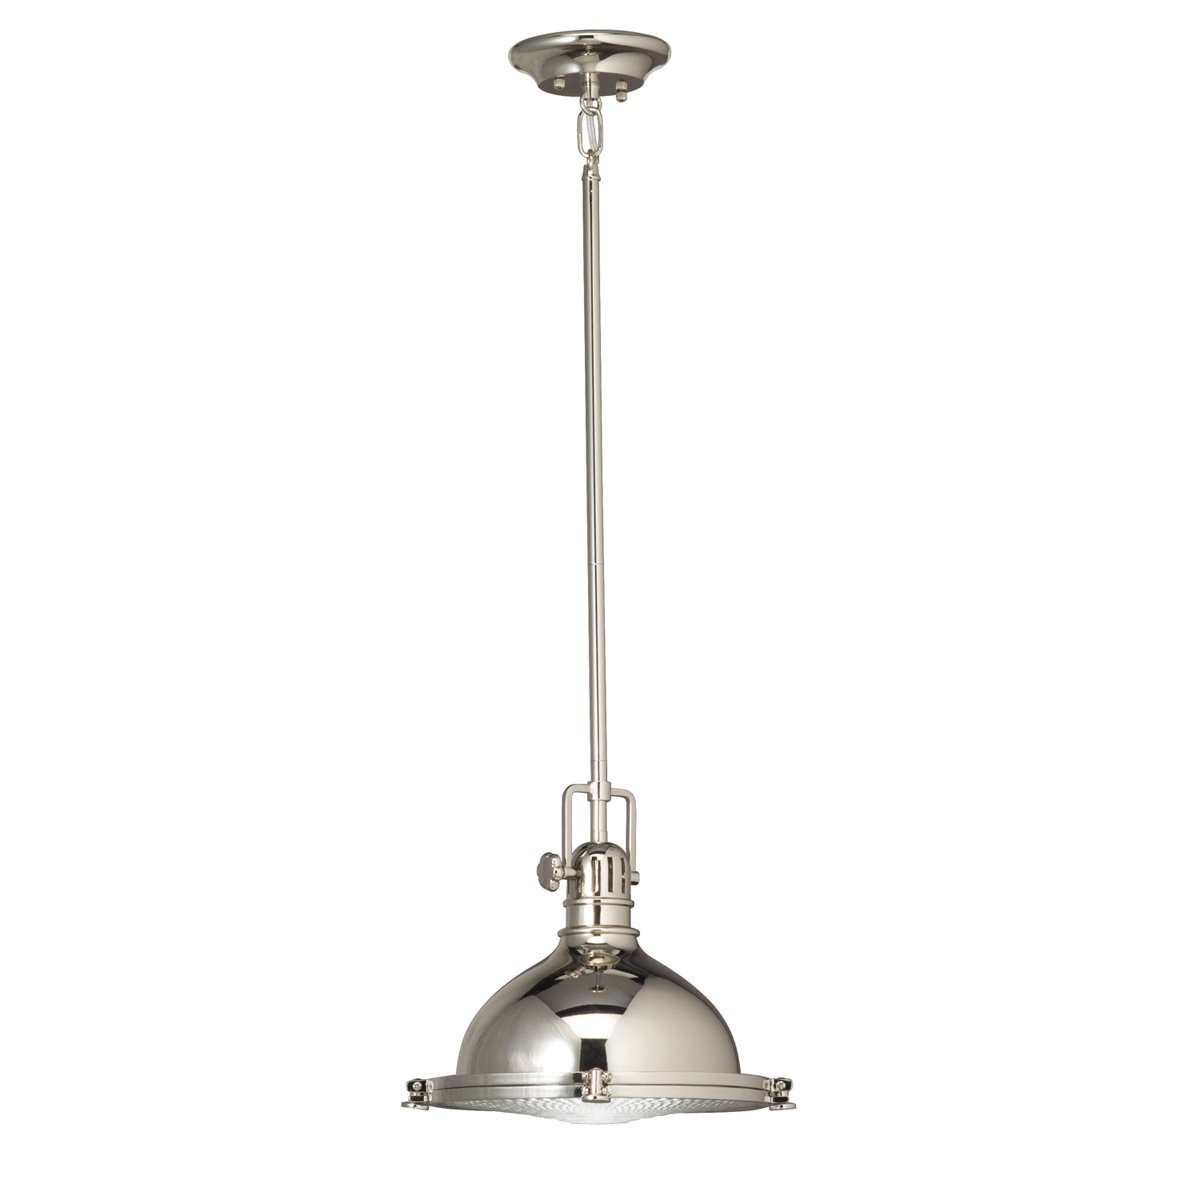 Attractive Kichler 2665PN One Light Pendant   Ceiling Pendant Fixtures   Amazon.com